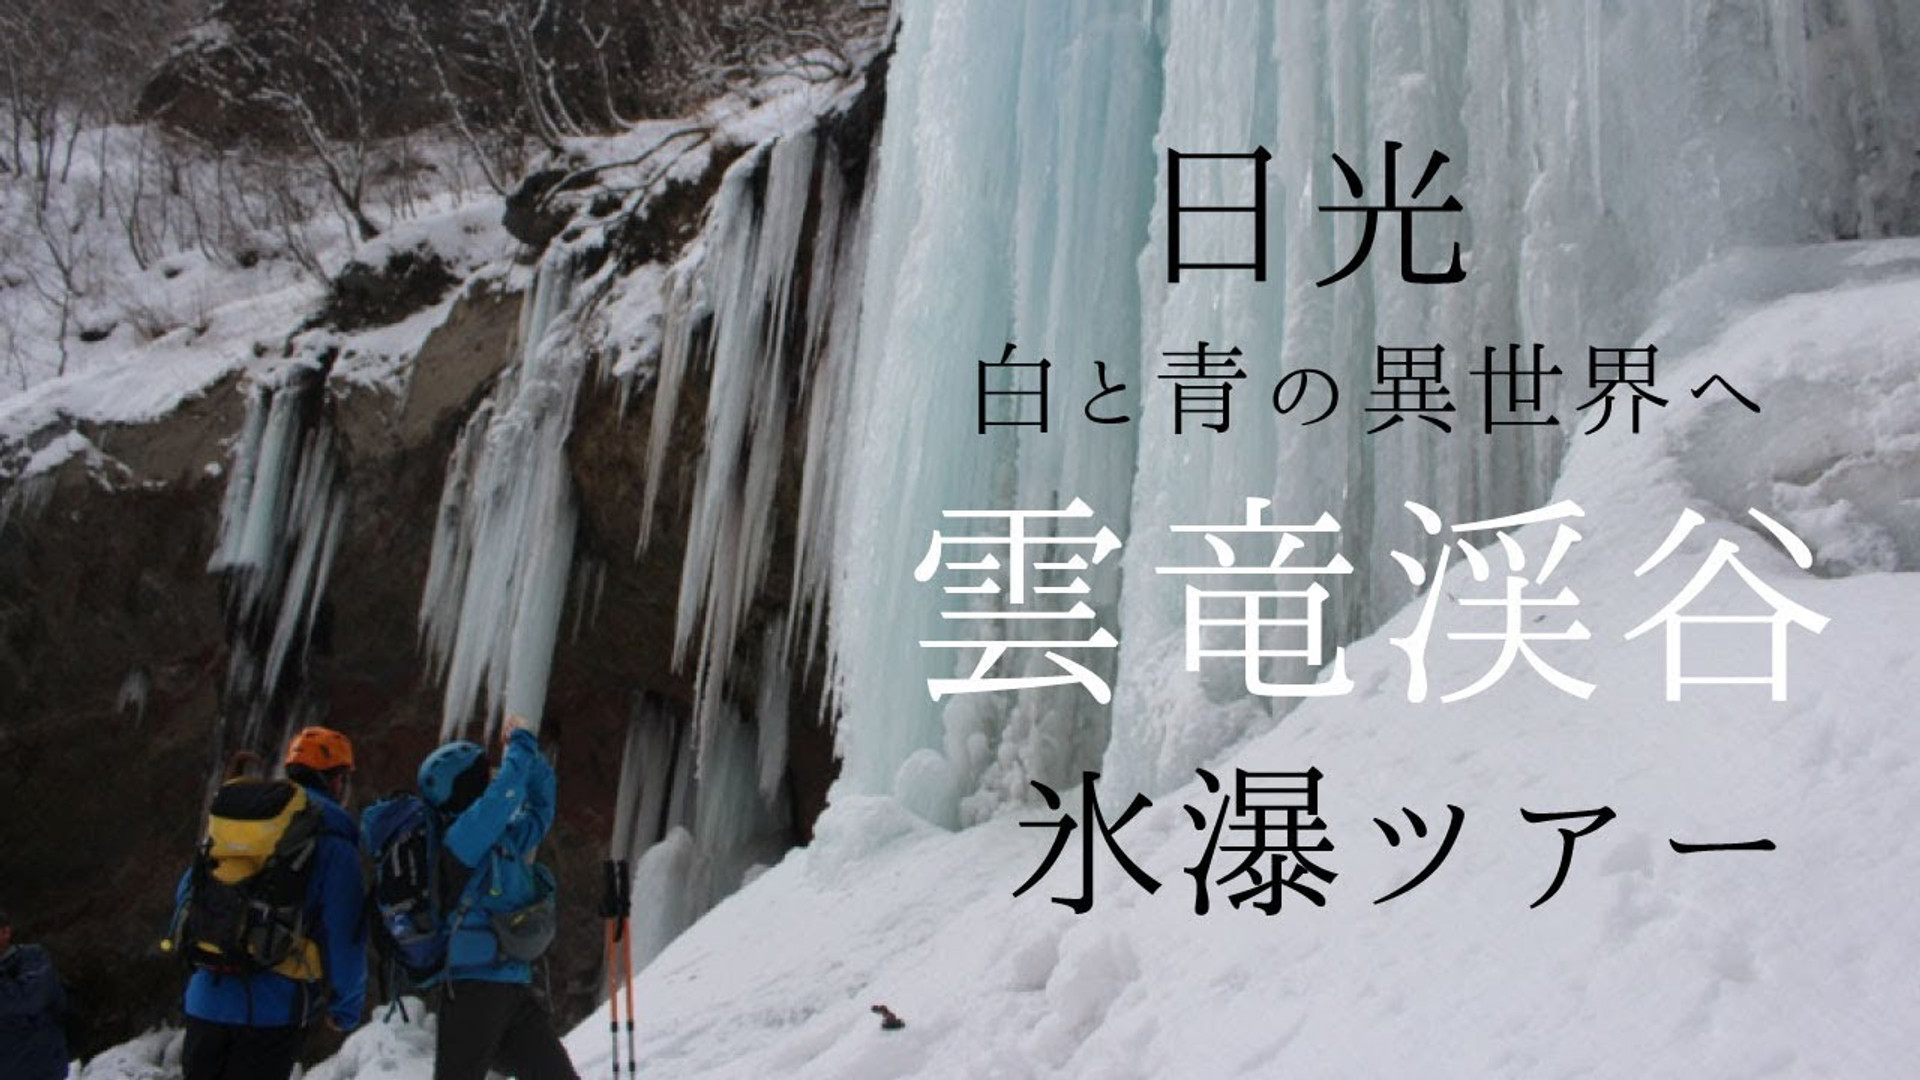 Frozen waterfall for the winter season only